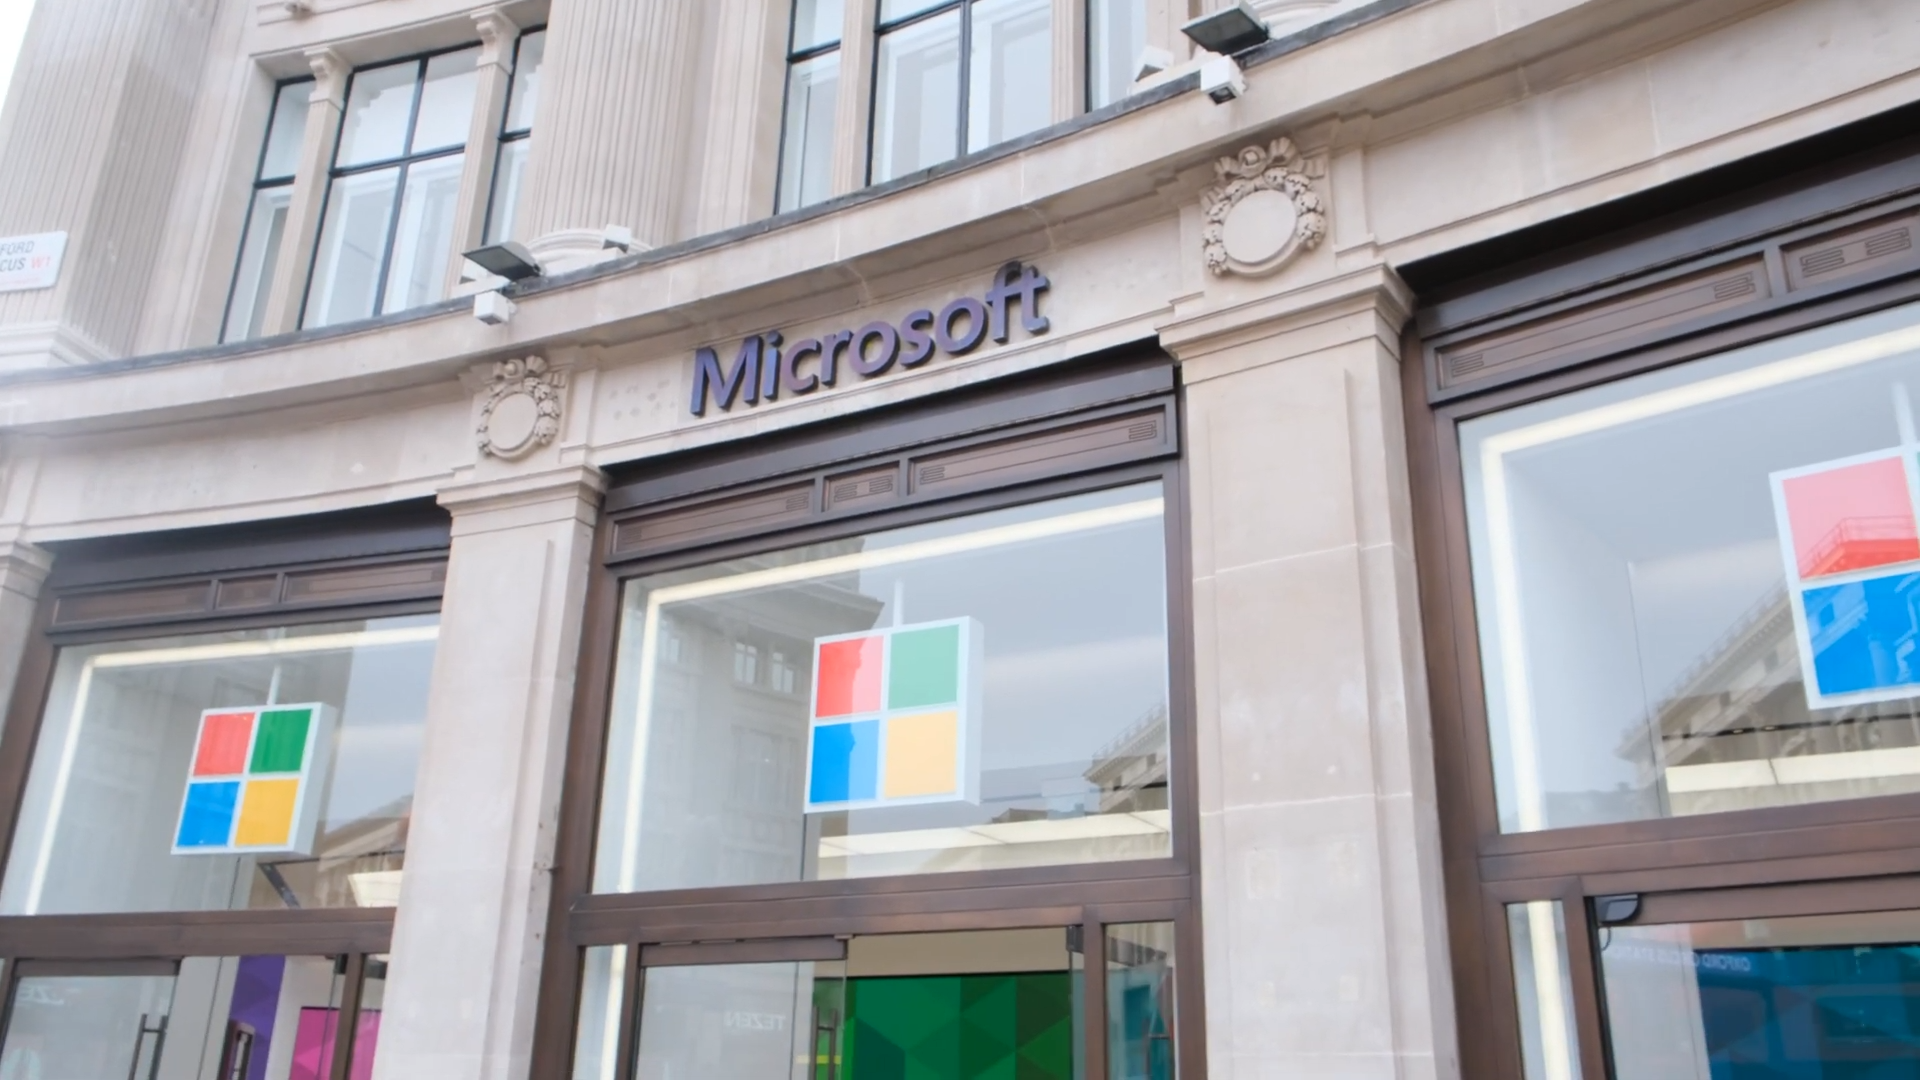 Outside the Microsoft Flagship Store in London